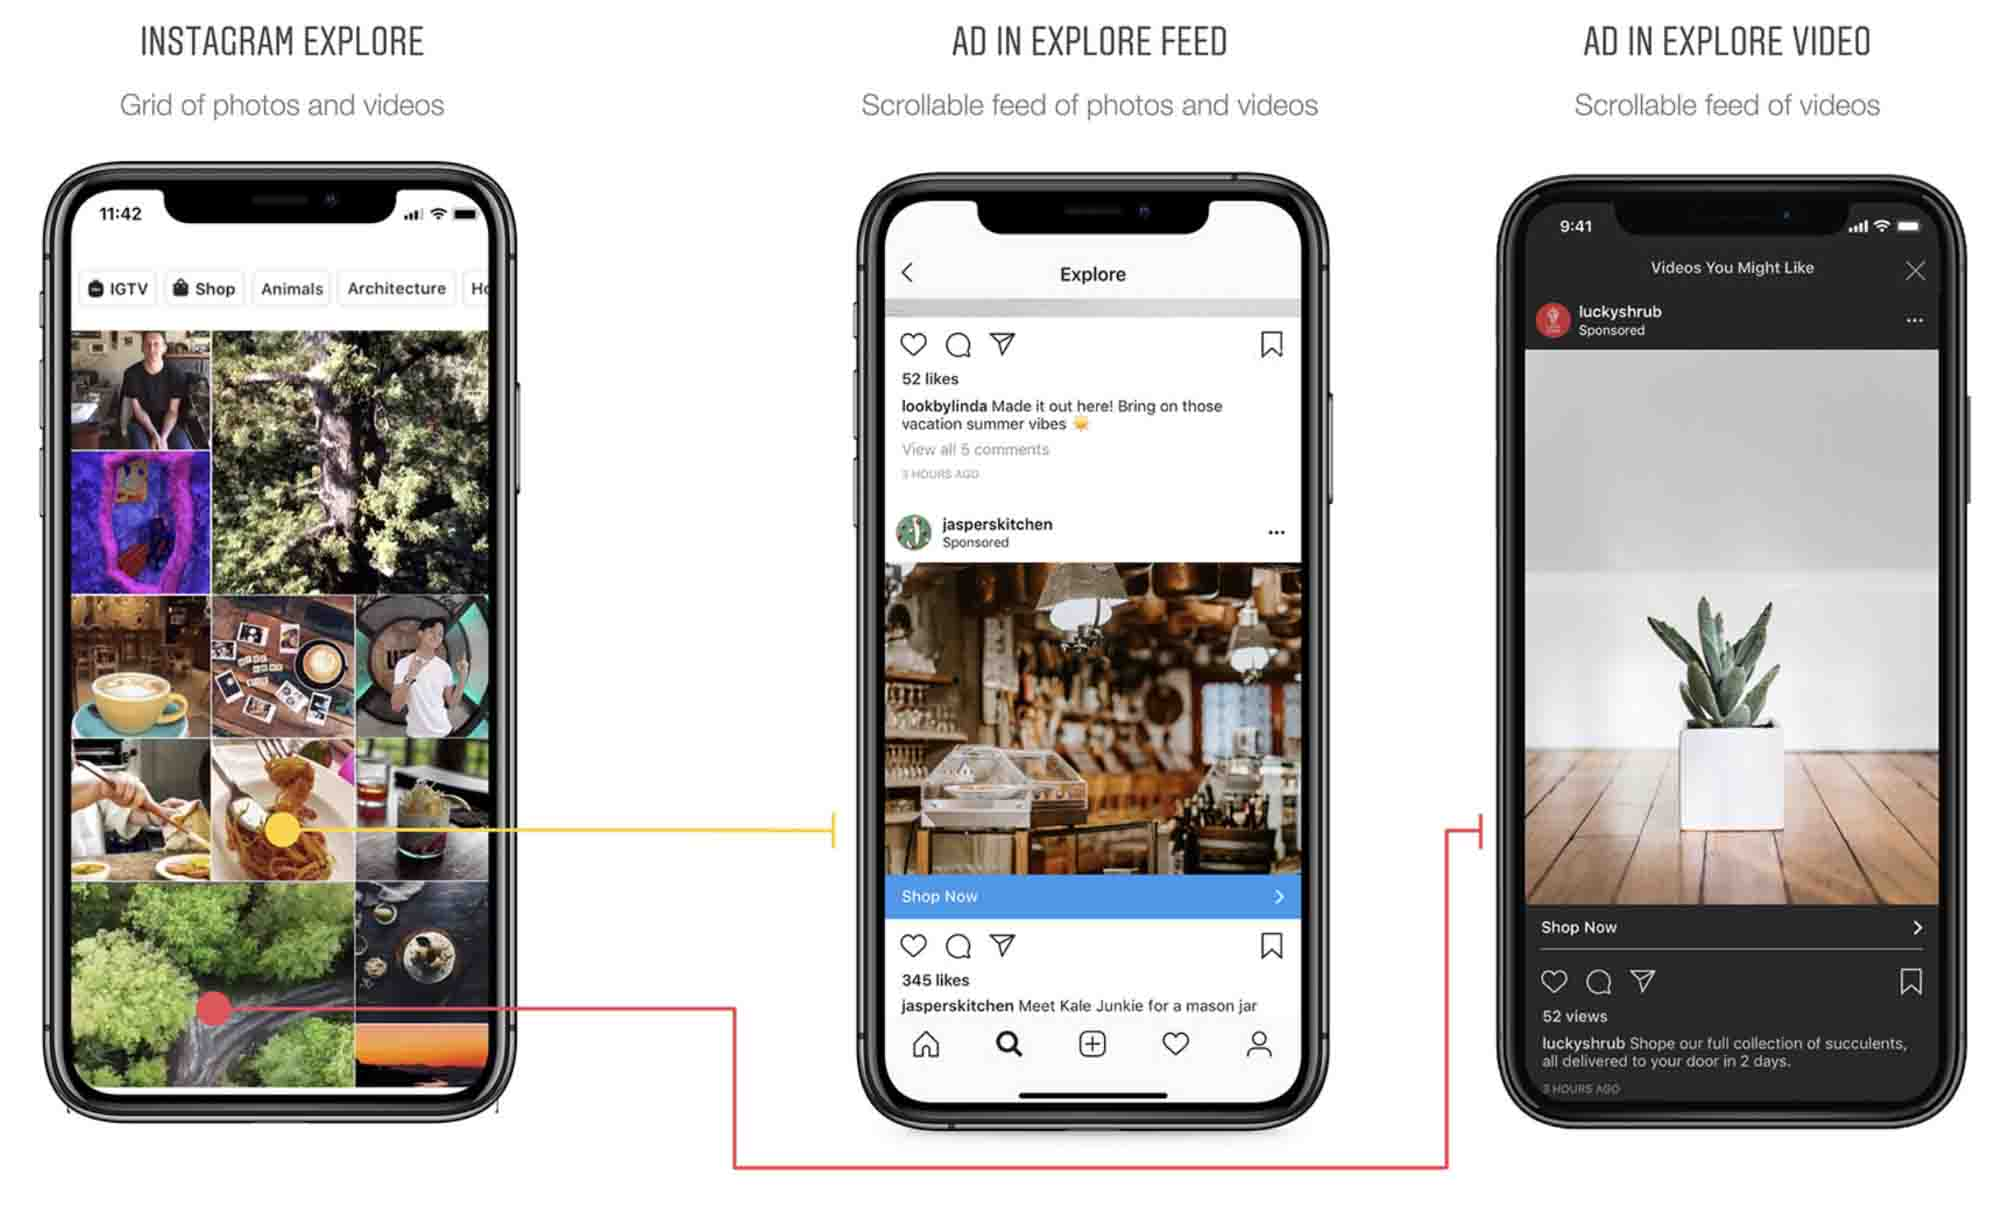 Types of Instagram ads — Explore ads